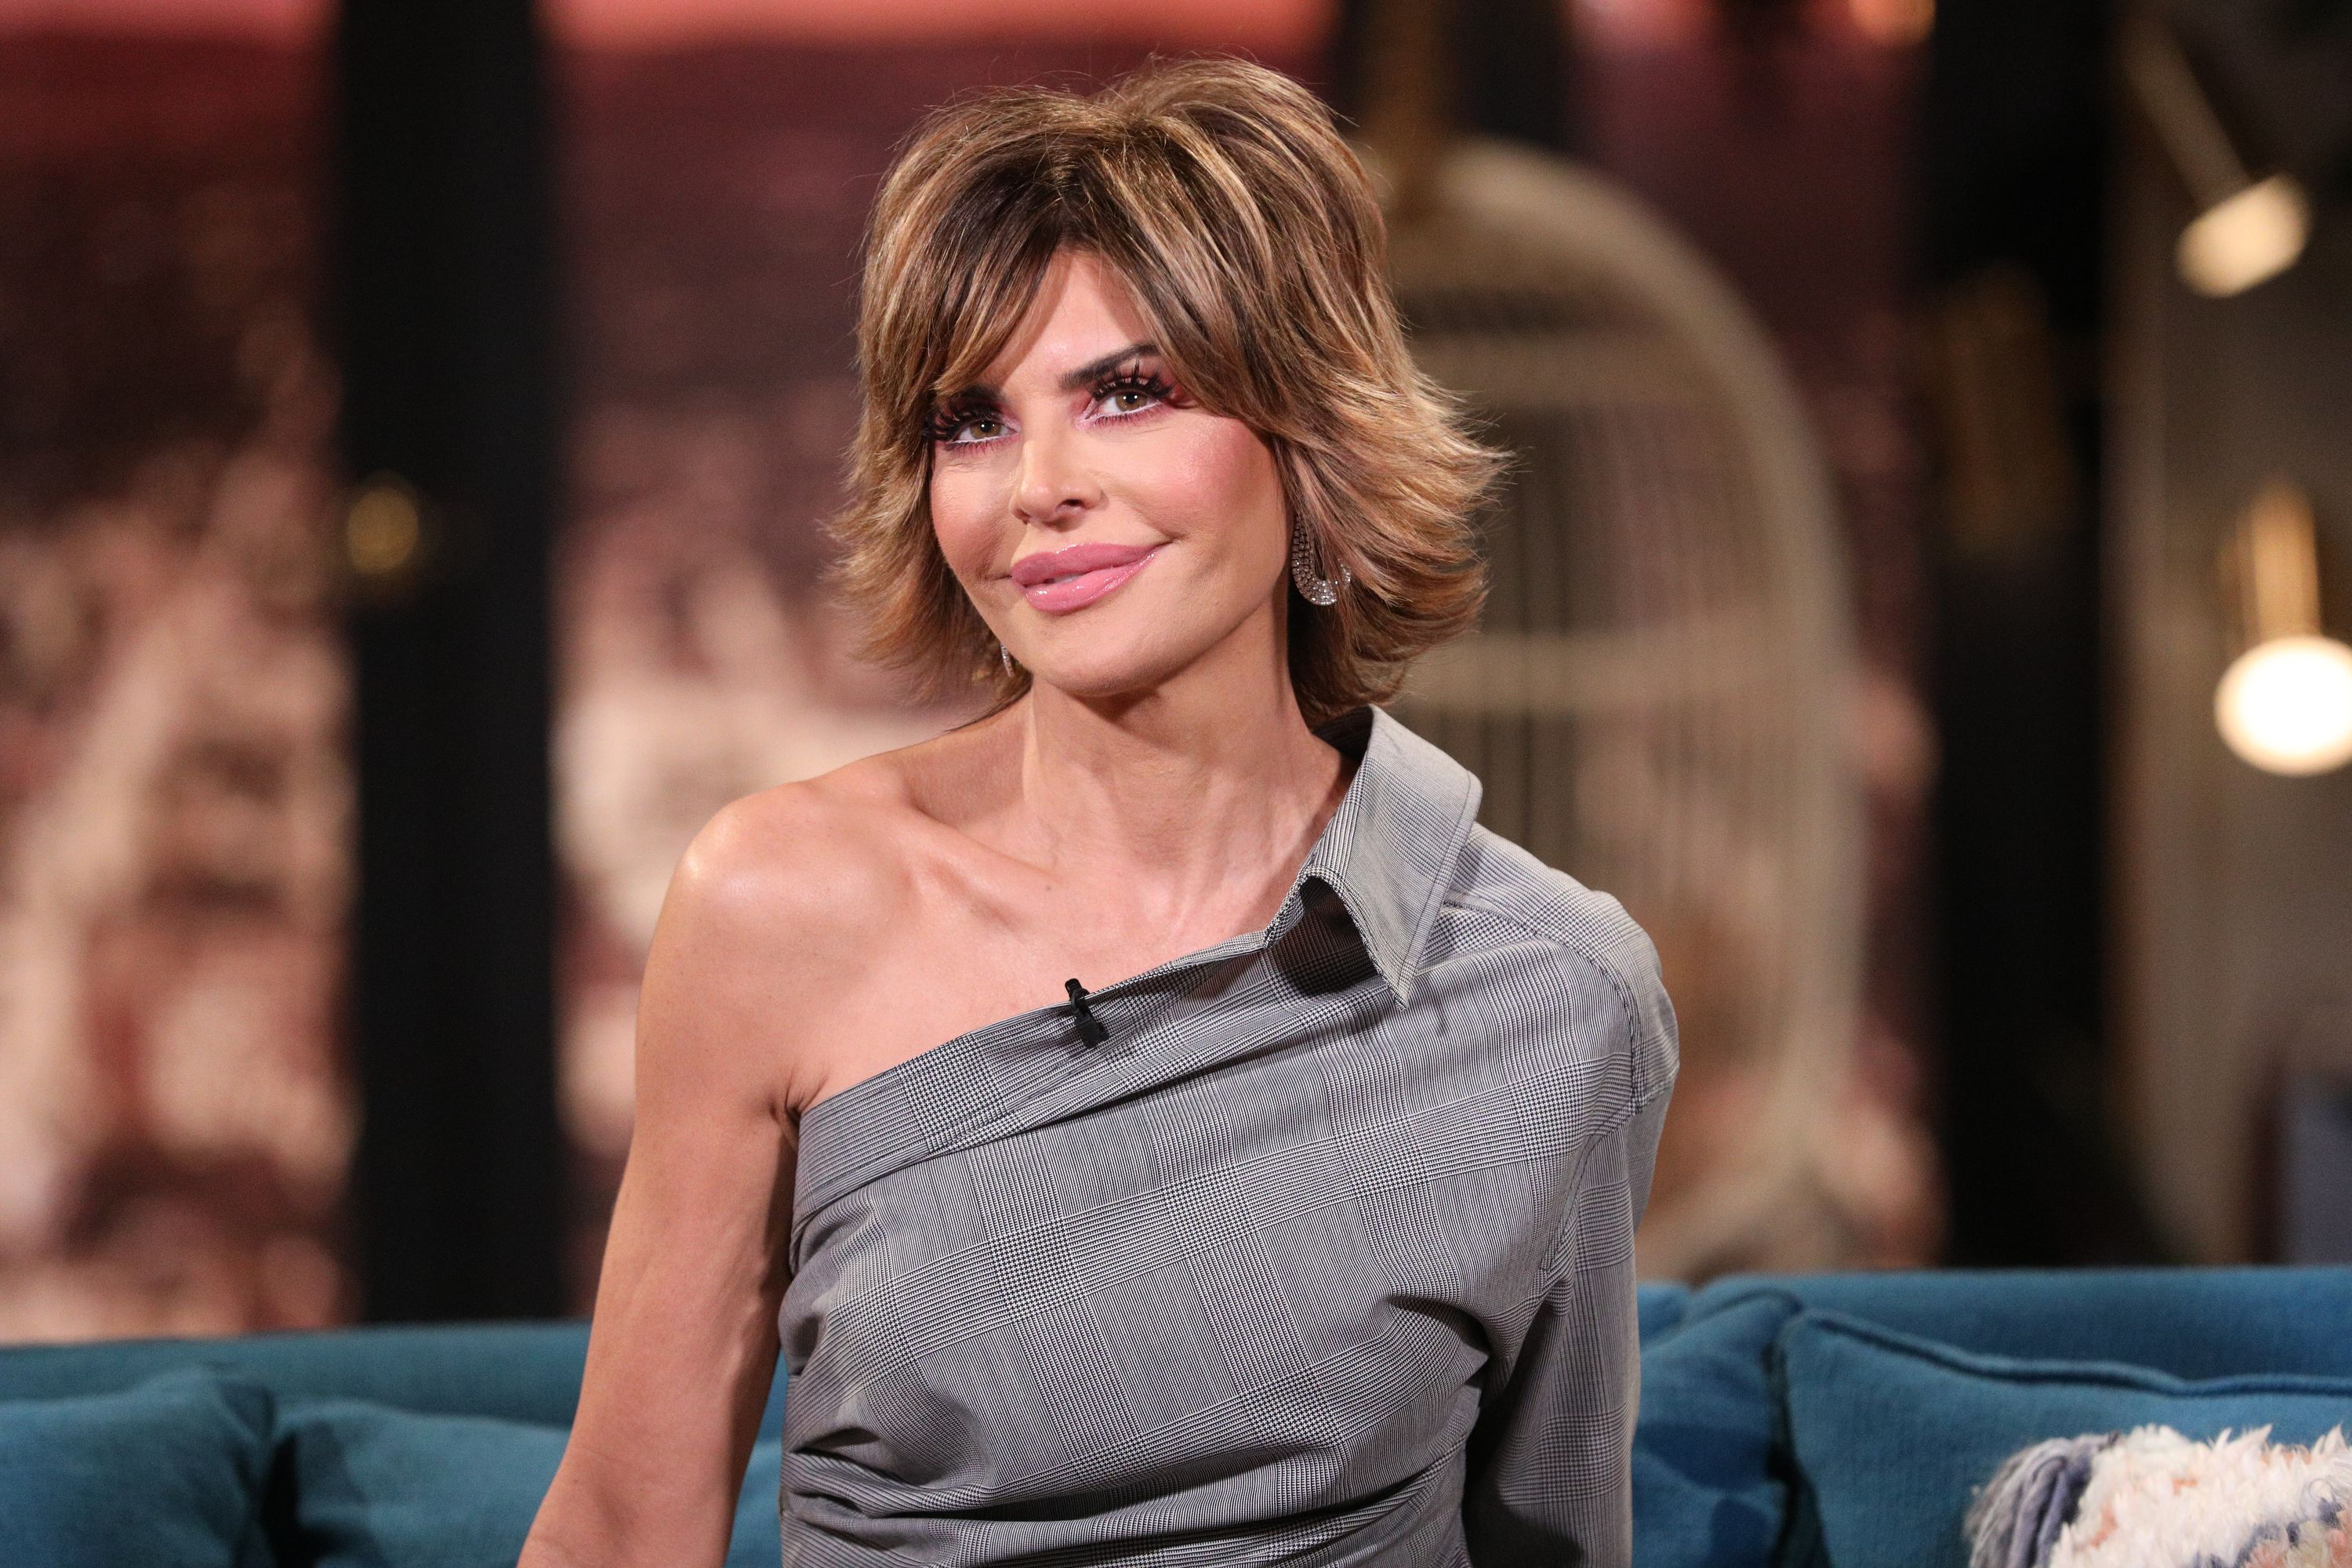 Lisa Rinna Just Posted An Insane Bikini Pic And You NEED To See Her Abs